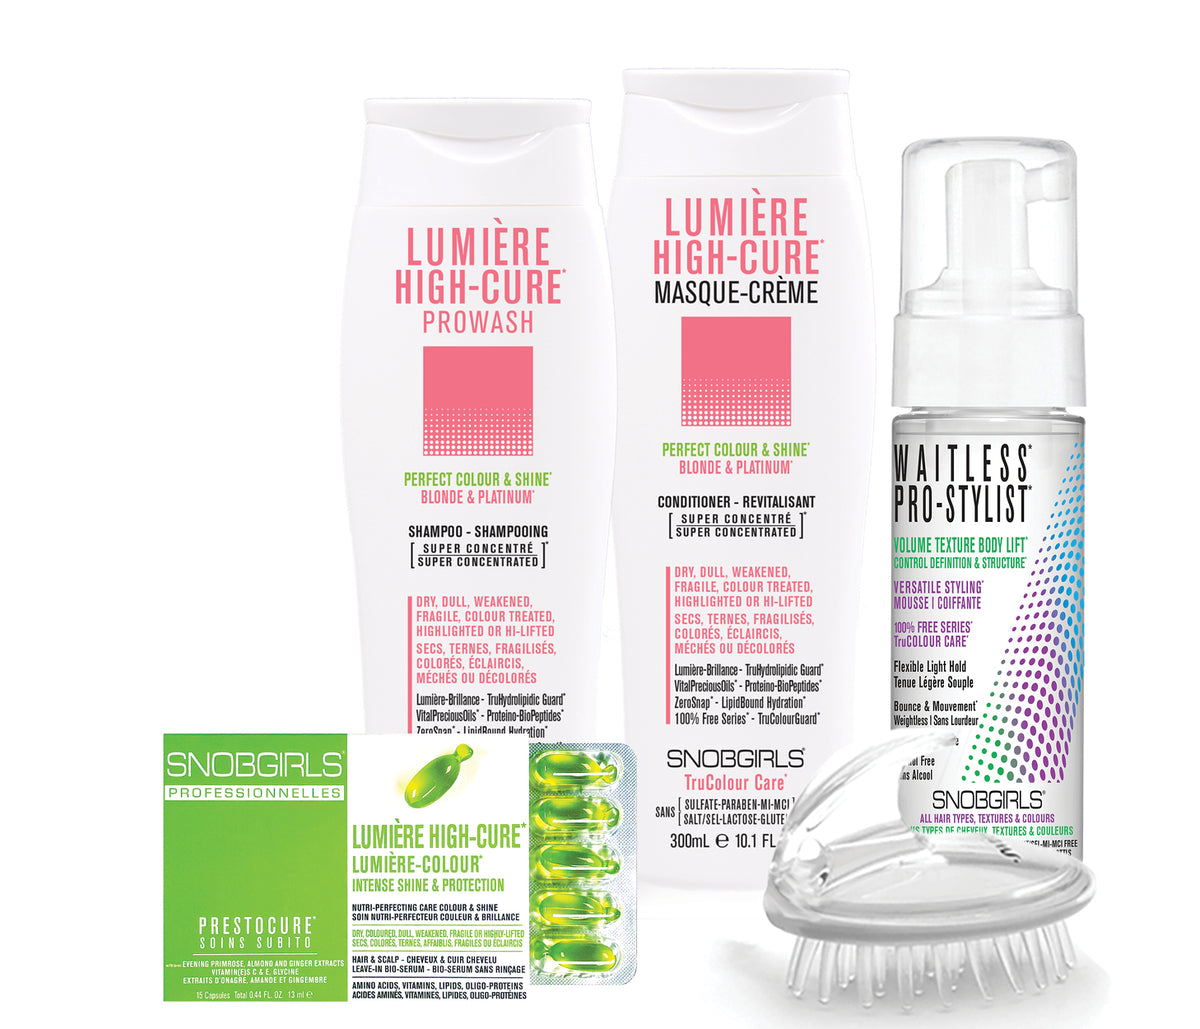 LUMIERE HIGH-CURE TRIO PERFECT COLOUR & SHINE Bundle - SNOBGIRLS.com